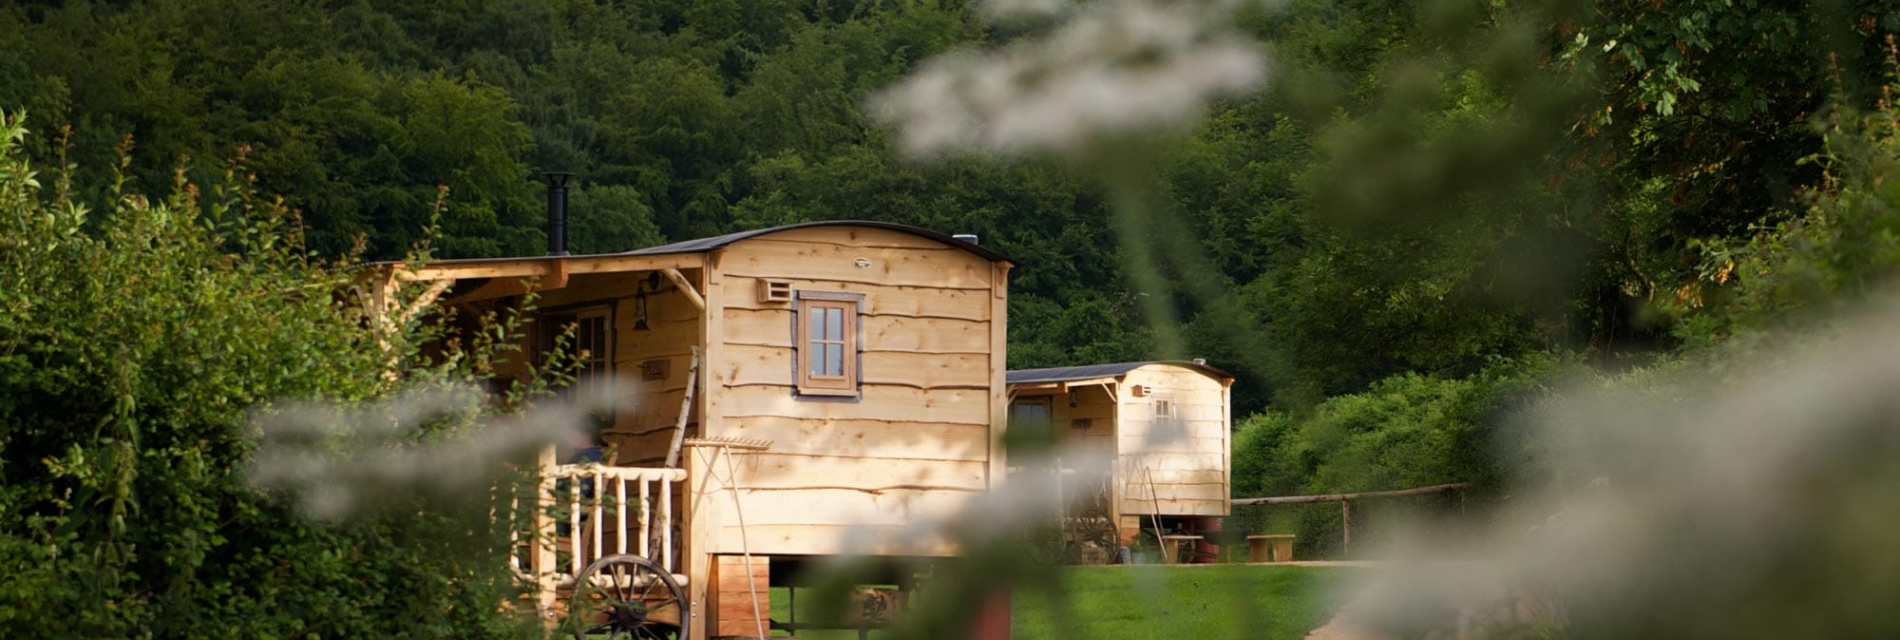 Loose Reins Glamping Accessibility Guide